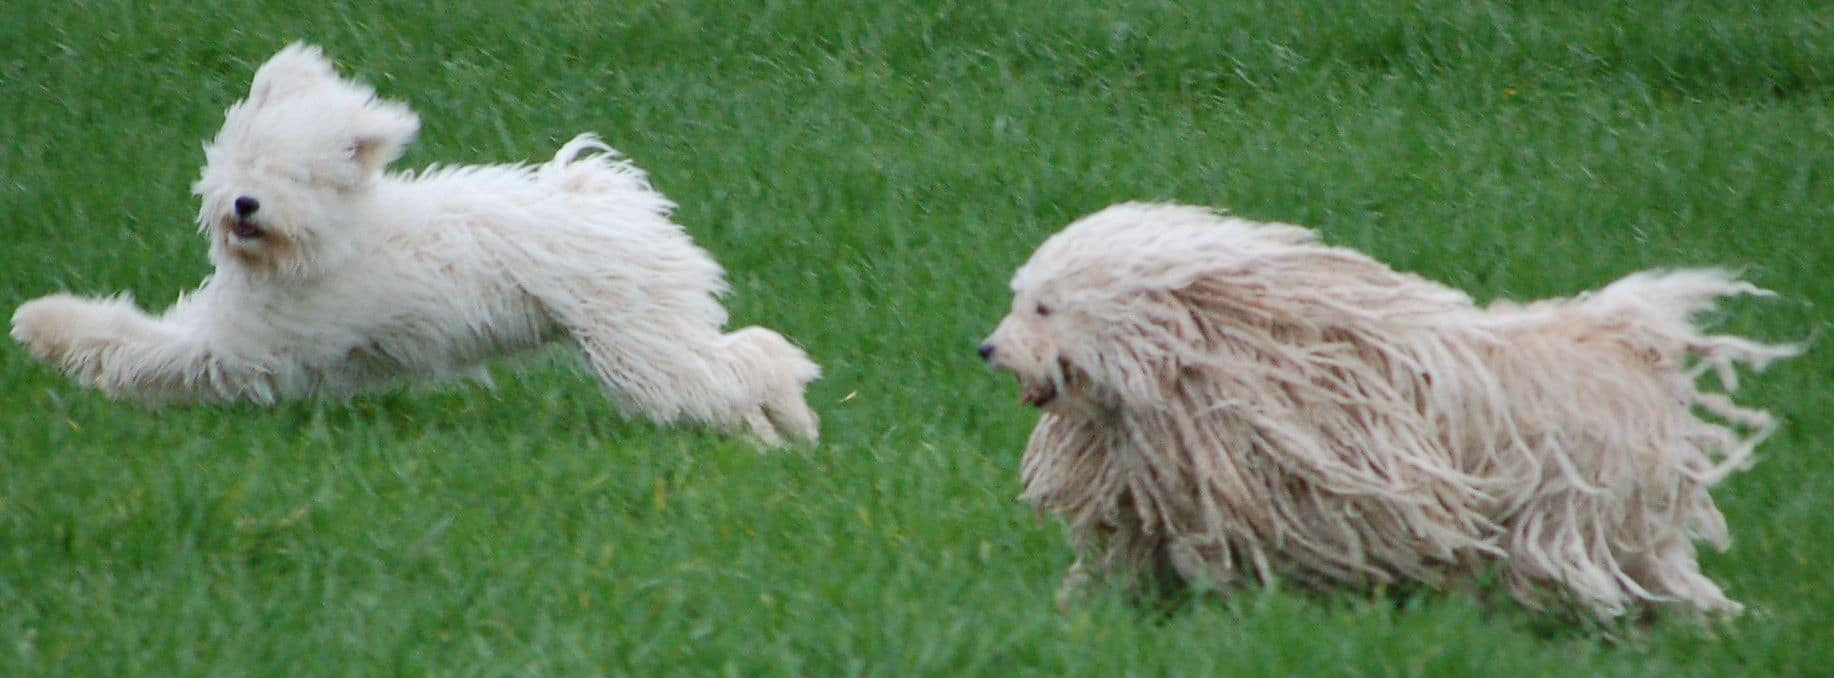 How healthy is the Puli breed?